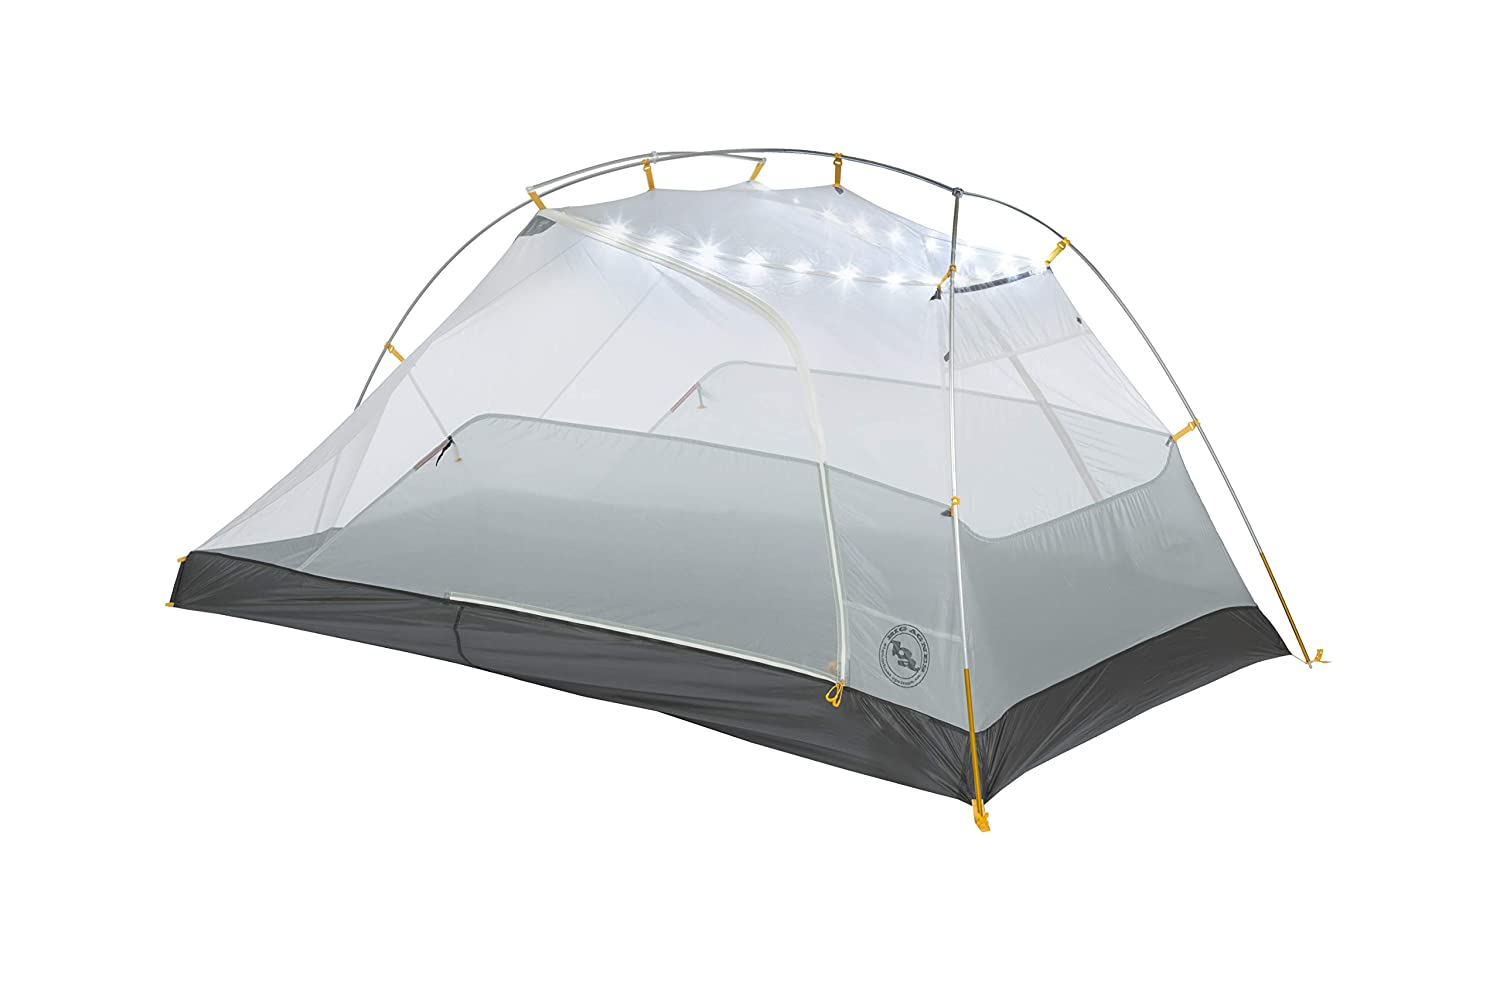 Big Agnes Tiger Wall UL mtnGLO Ultralight Backpacking Tent